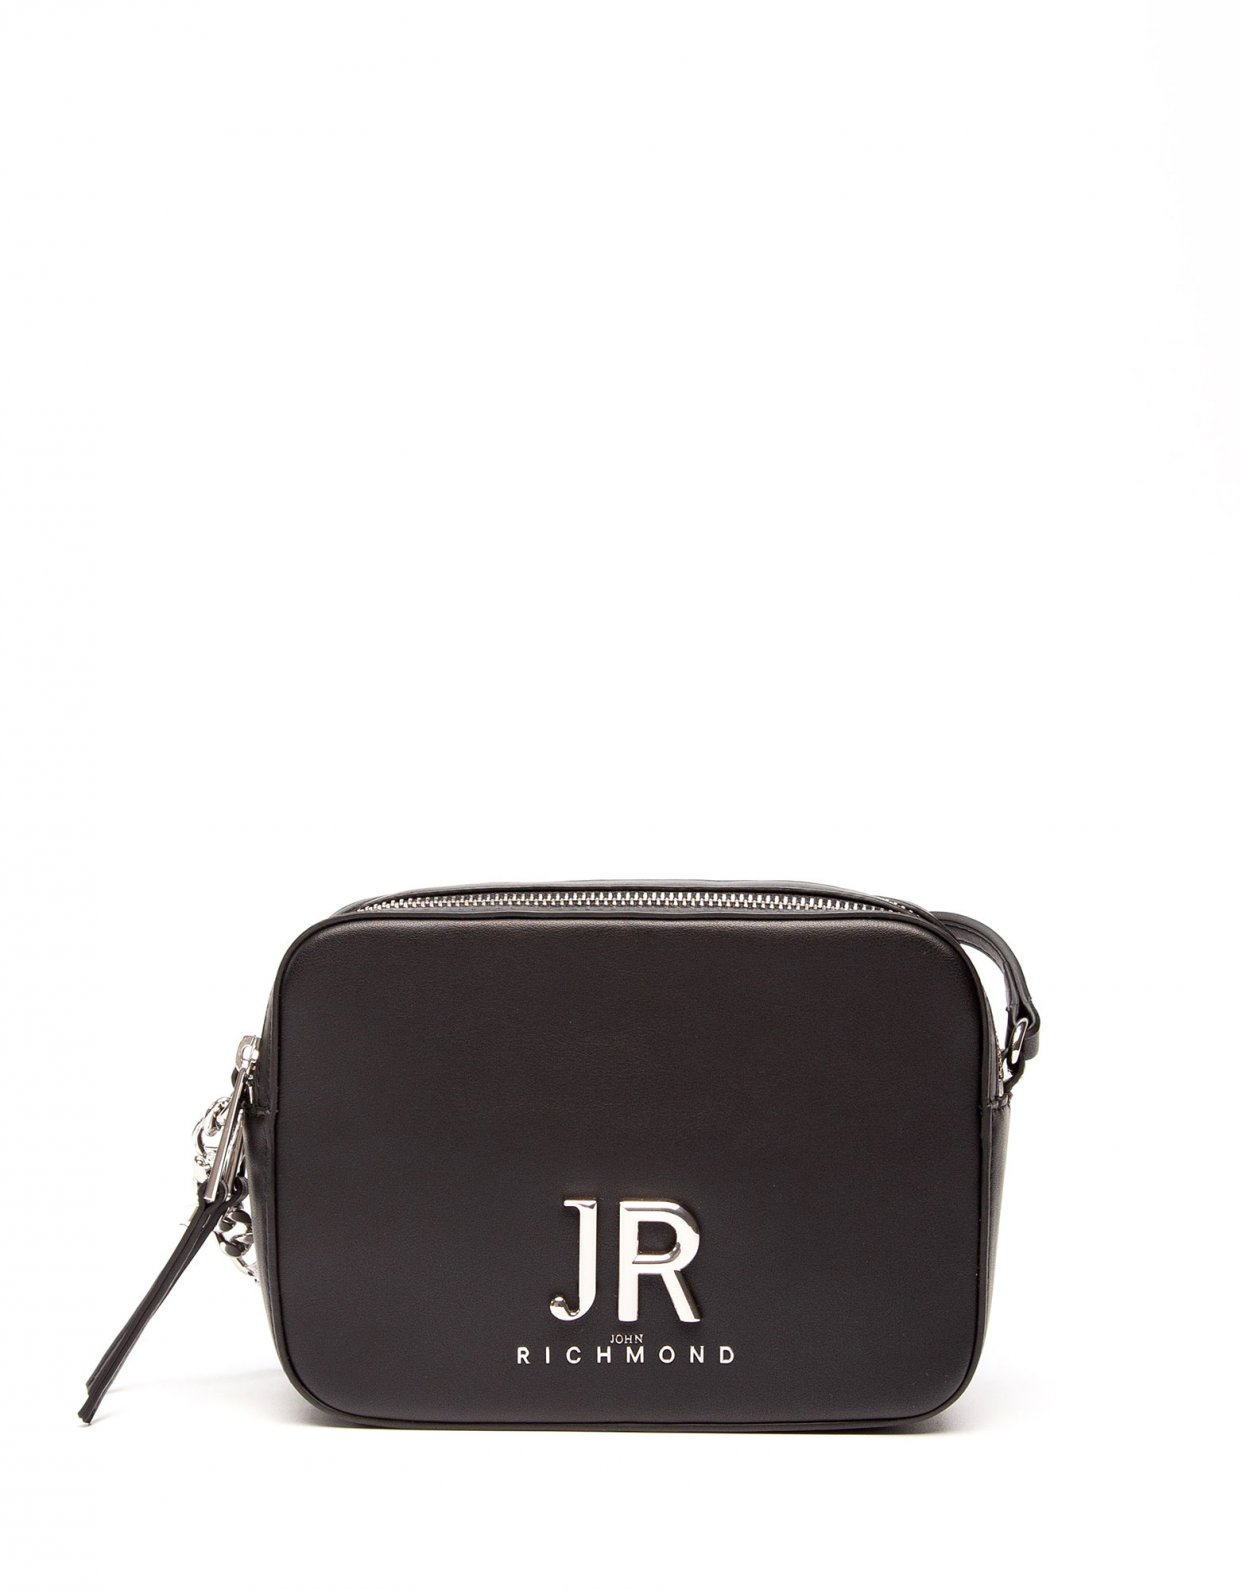 John Richmond Camera bag Cocovelo